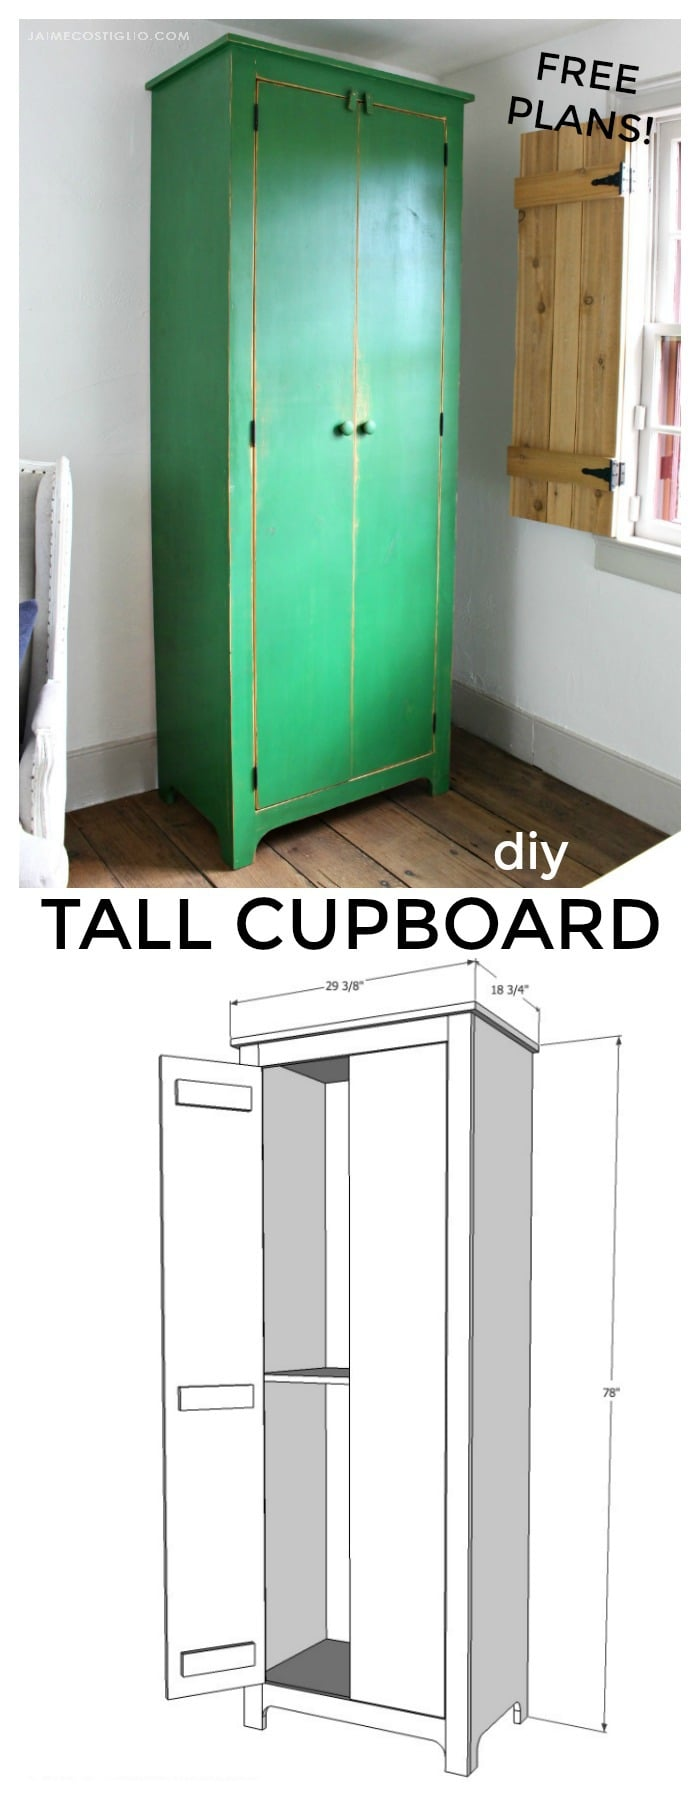 diy tall cupboard free plans